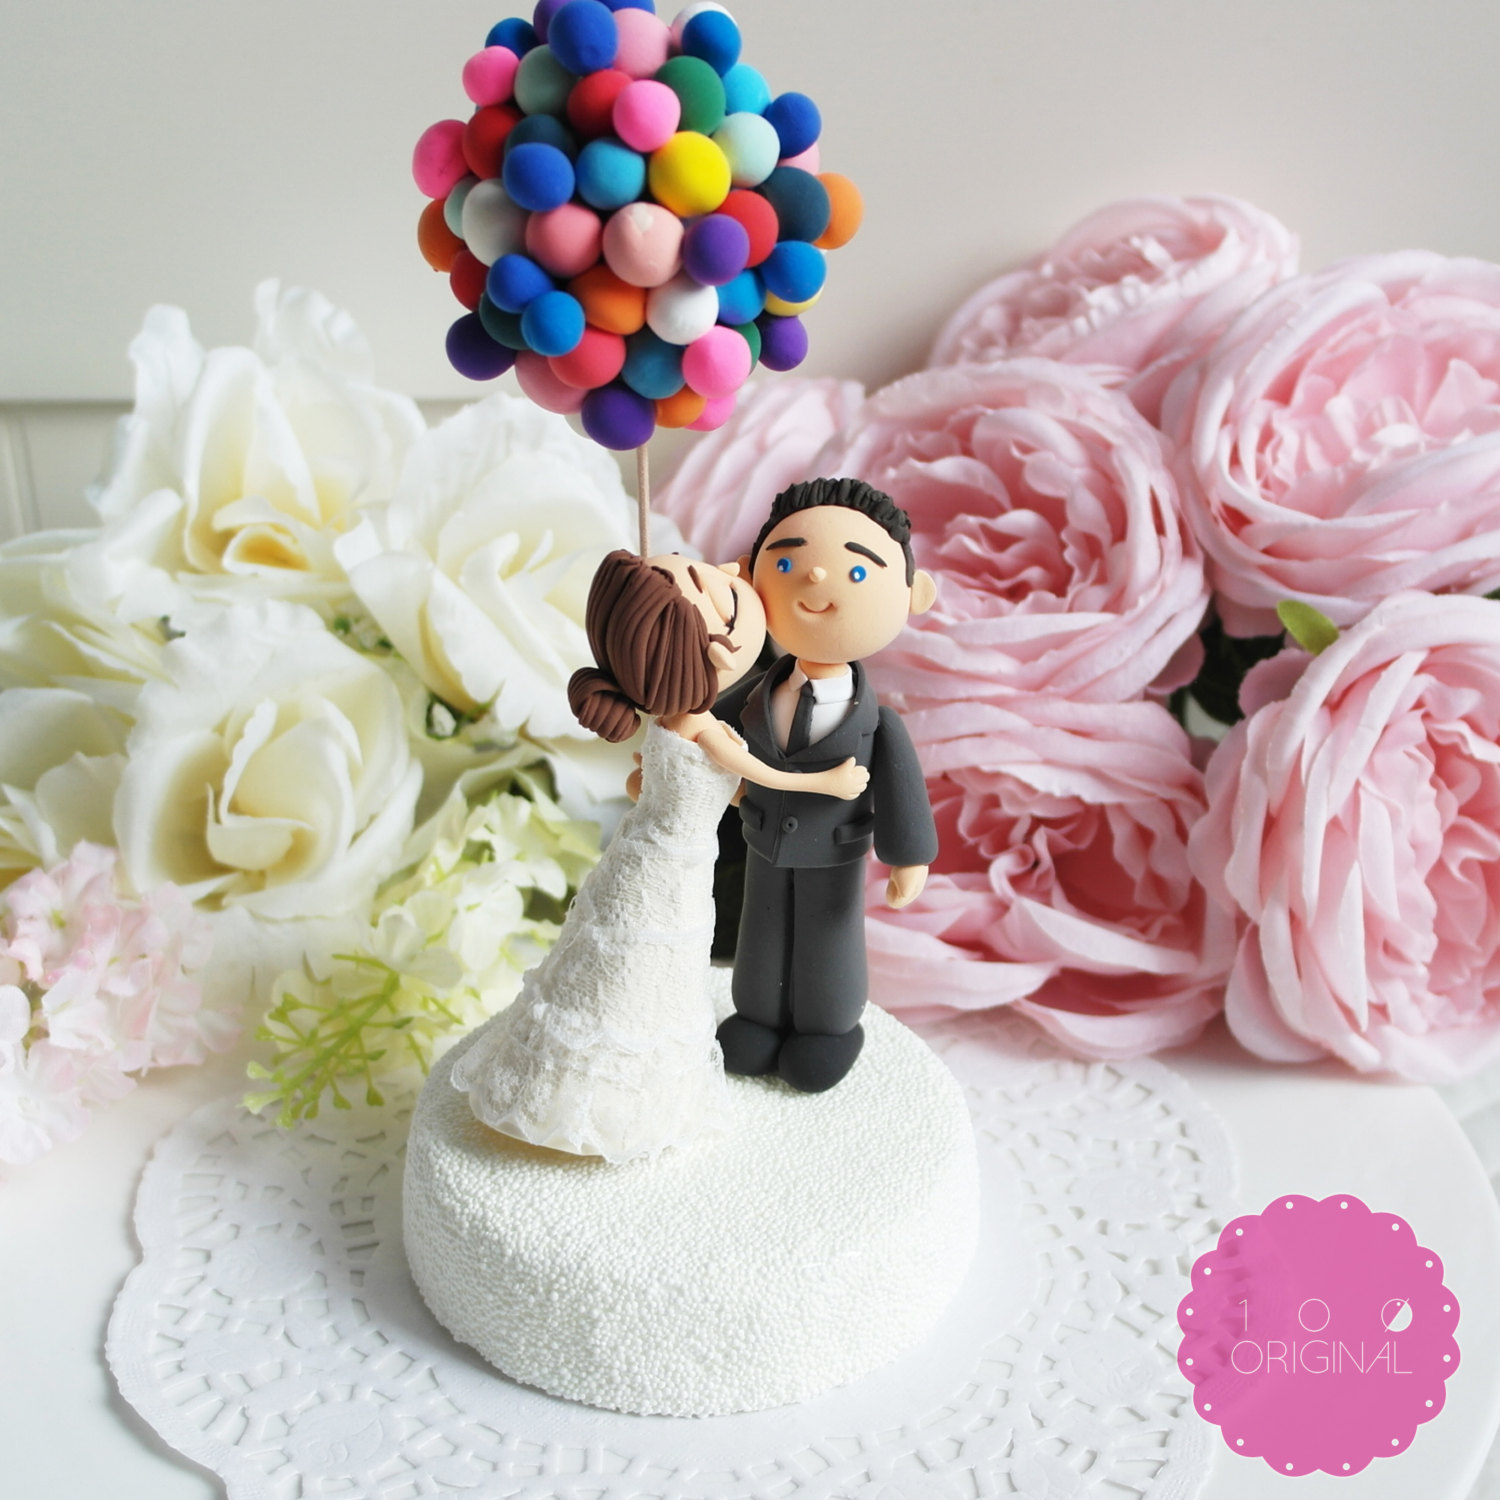 up themed cake topper - 9 Adorable Custom Made Cake Toppers via https://emmalinebride.com/decor/custom-made-cake-toppers/